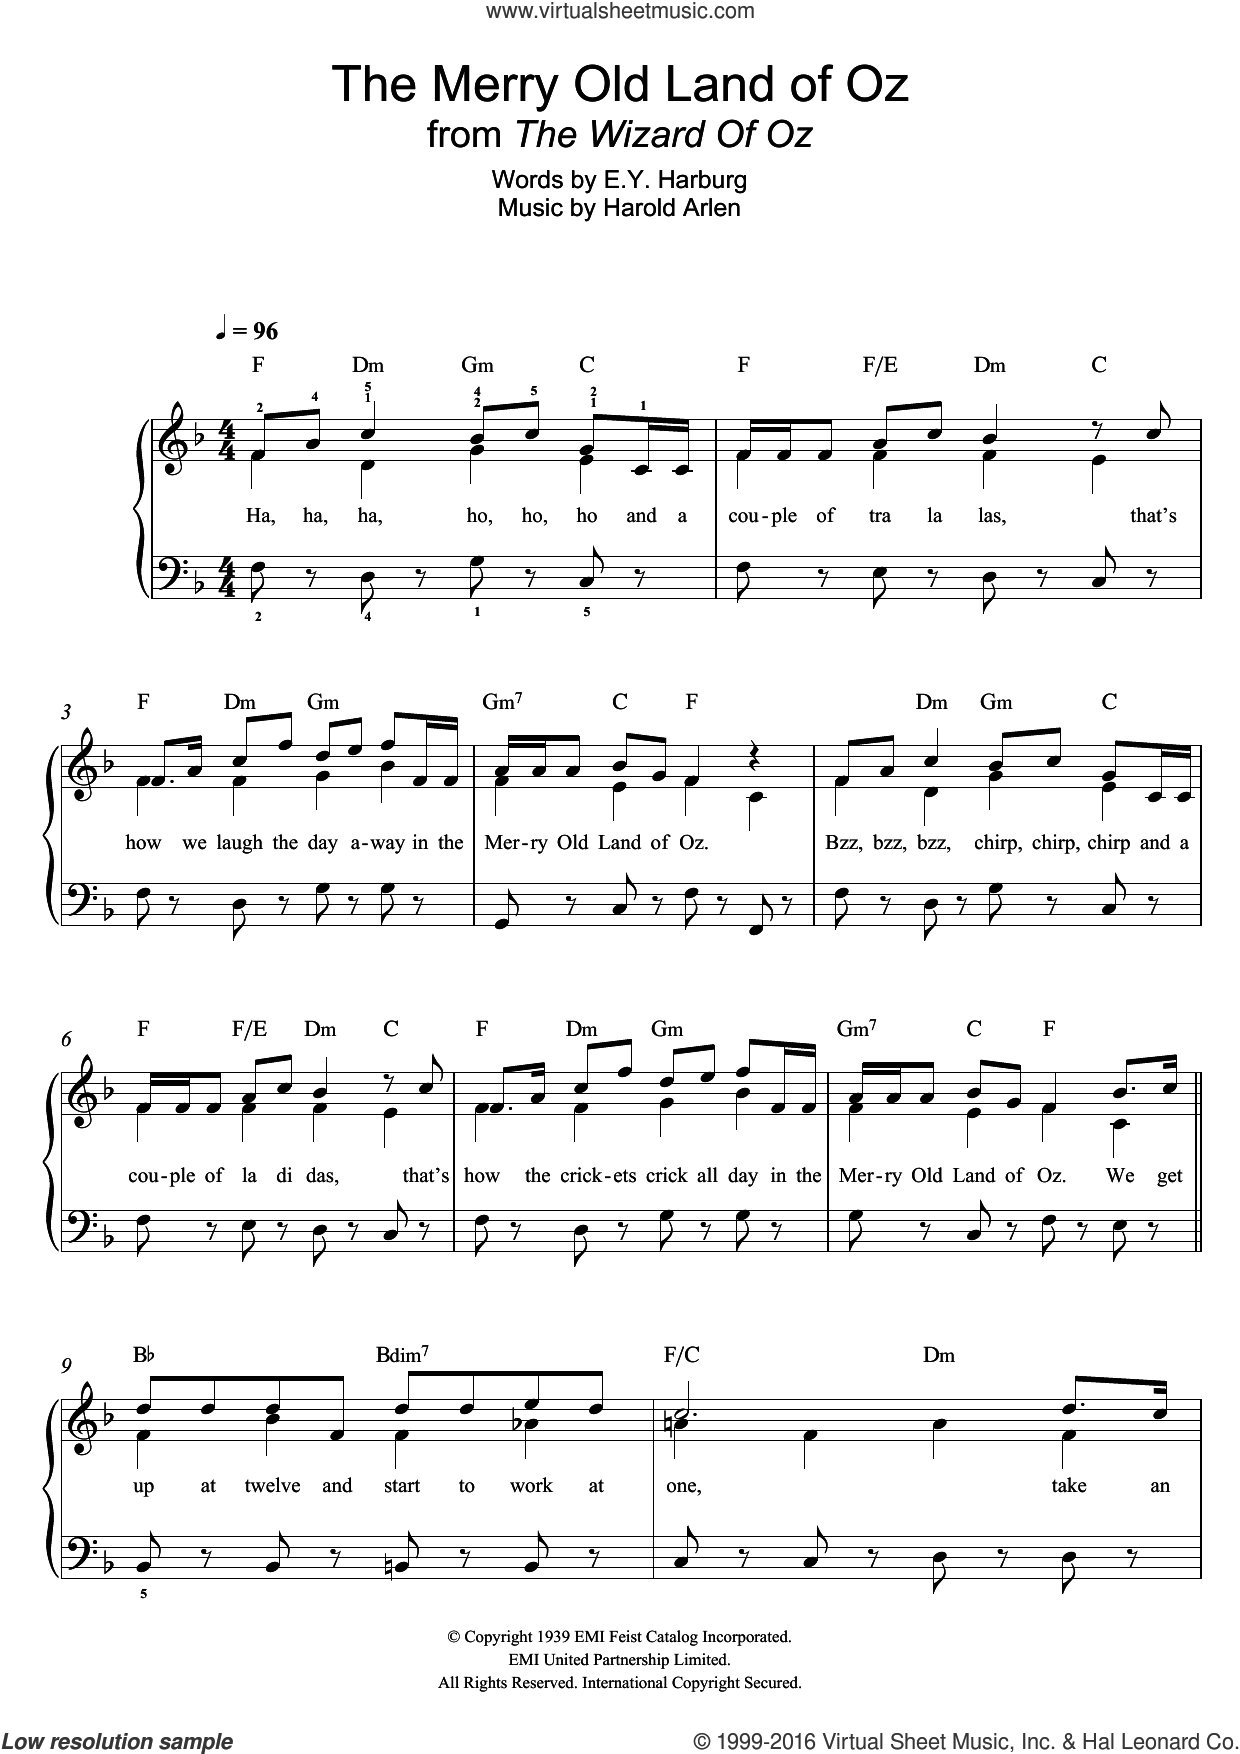 The Merry Old Land Of Oz (from 'The Wizard Of Oz') sheet music for piano solo by Harold Arlen and E.Y. Harburg, easy skill level